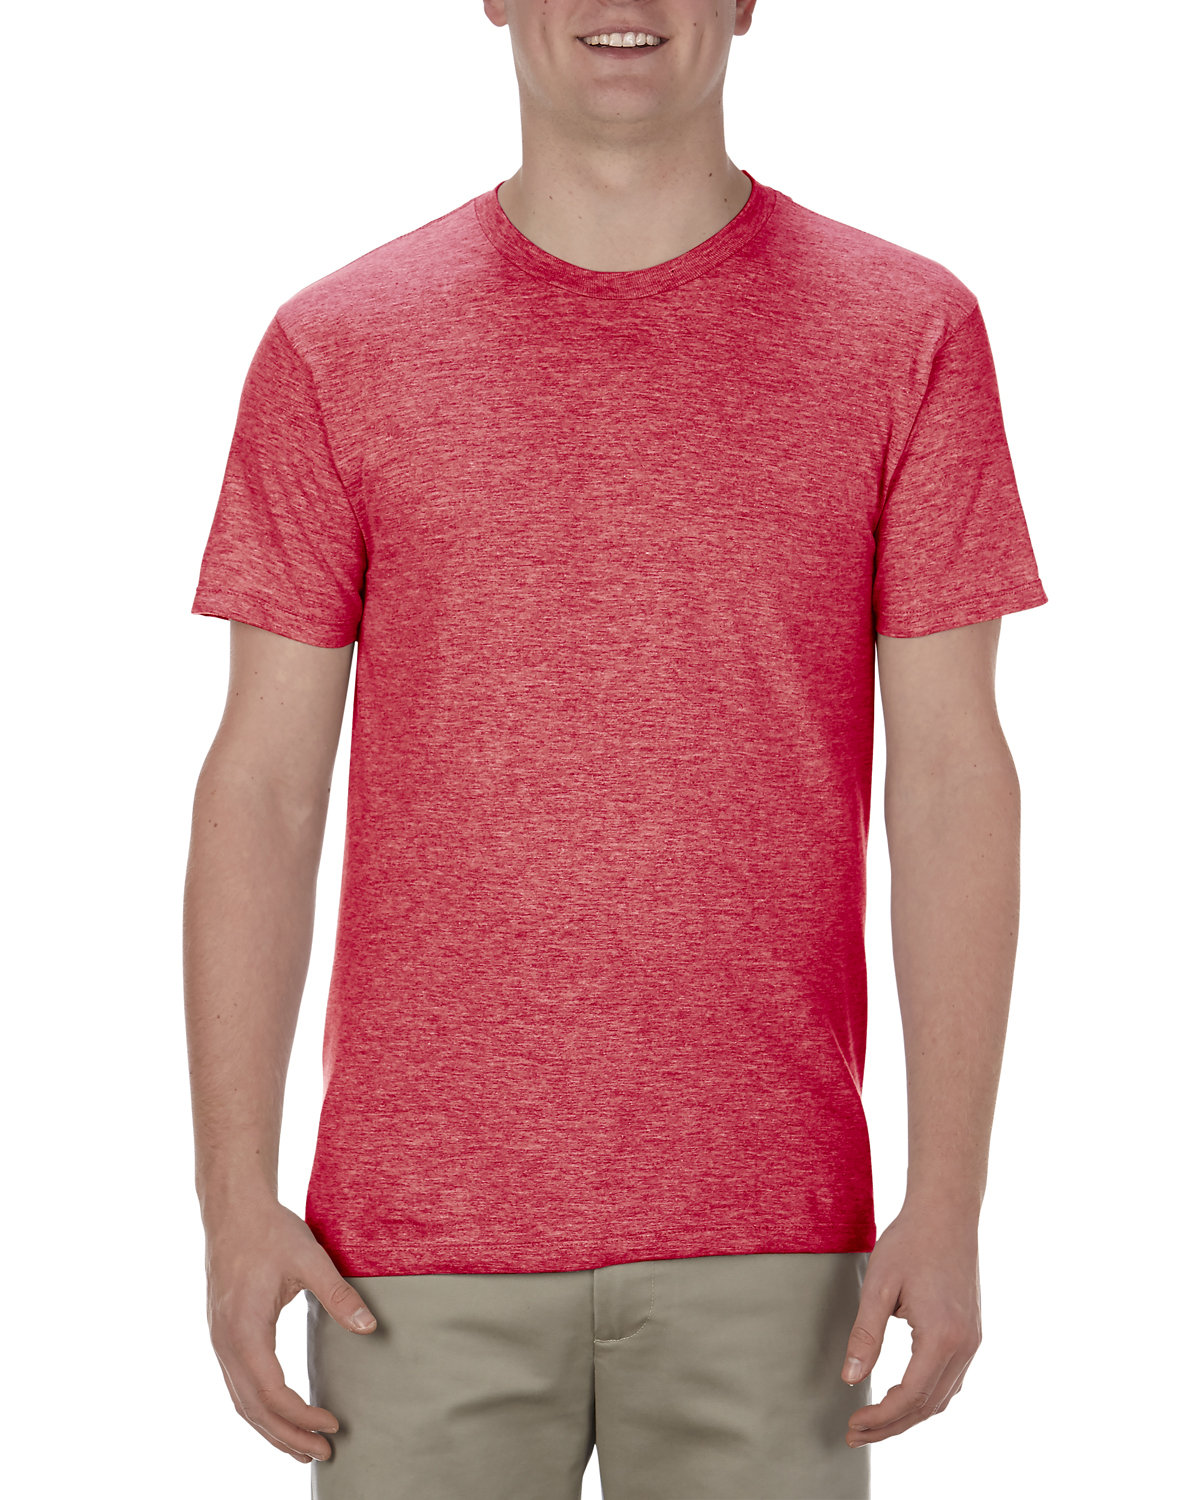 Alstyle Adult 4.3 oz., Ringspun Cotton T-Shirt RED HEATHER